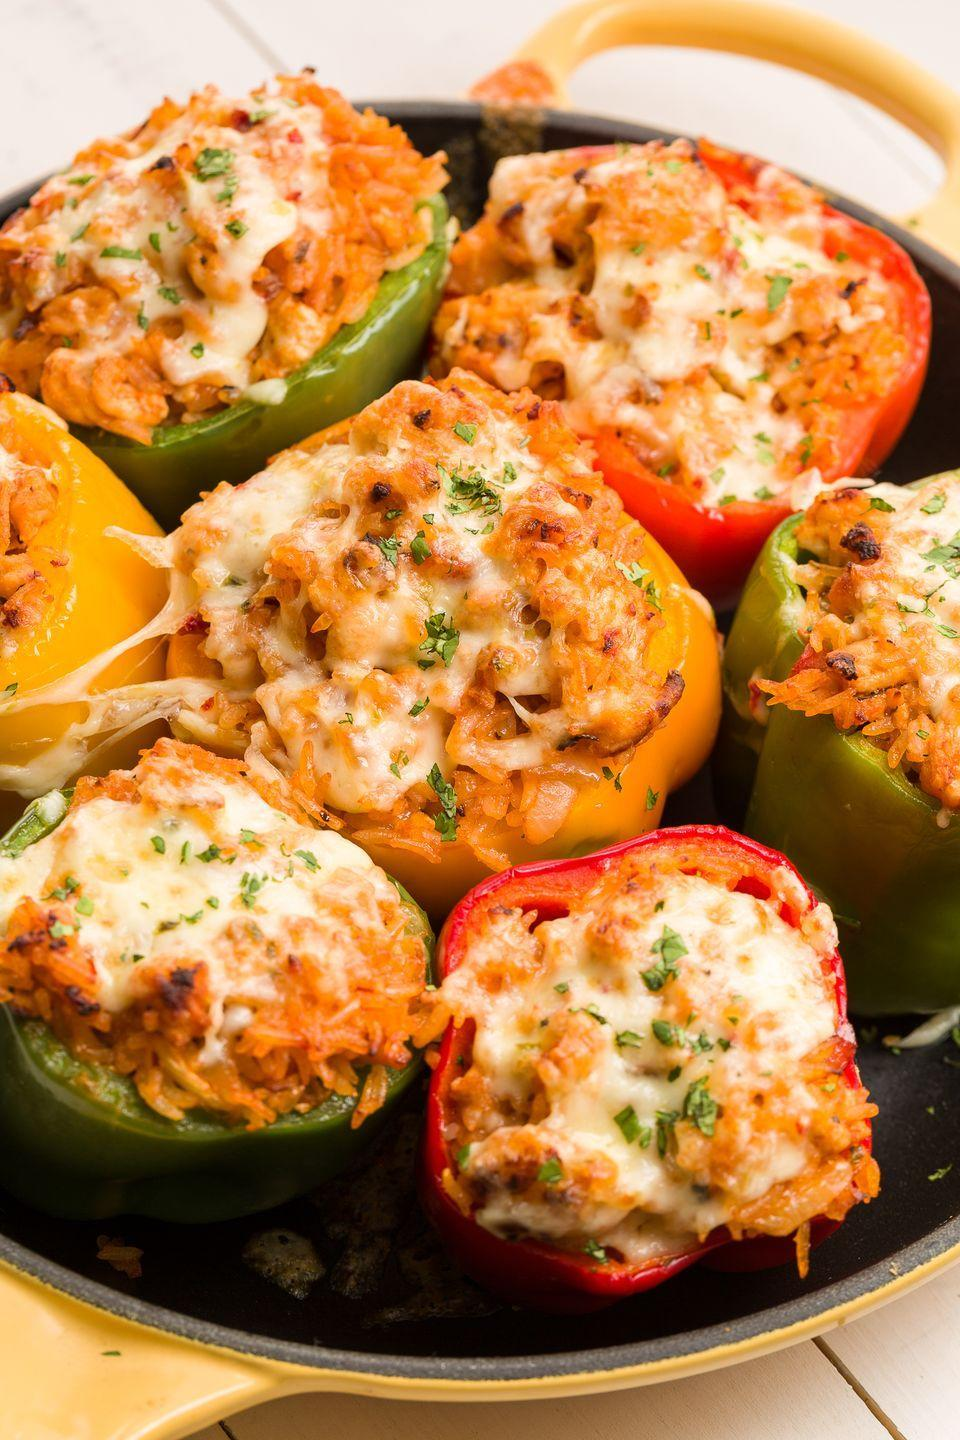 """<p>Peppers look their best all dressed up in ground turkey.</p><p>Get the recipe from <a href=""""https://www.redbookmag.com/cooking/recipe-ideas/recipes/a46153/trader-joes-turkey-stuffed-peppers-with-pepperjack-recipe/"""" rel=""""nofollow noopener"""" target=""""_blank"""" data-ylk=""""slk:Delish"""" class=""""link rapid-noclick-resp"""">Delish</a>.</p>"""